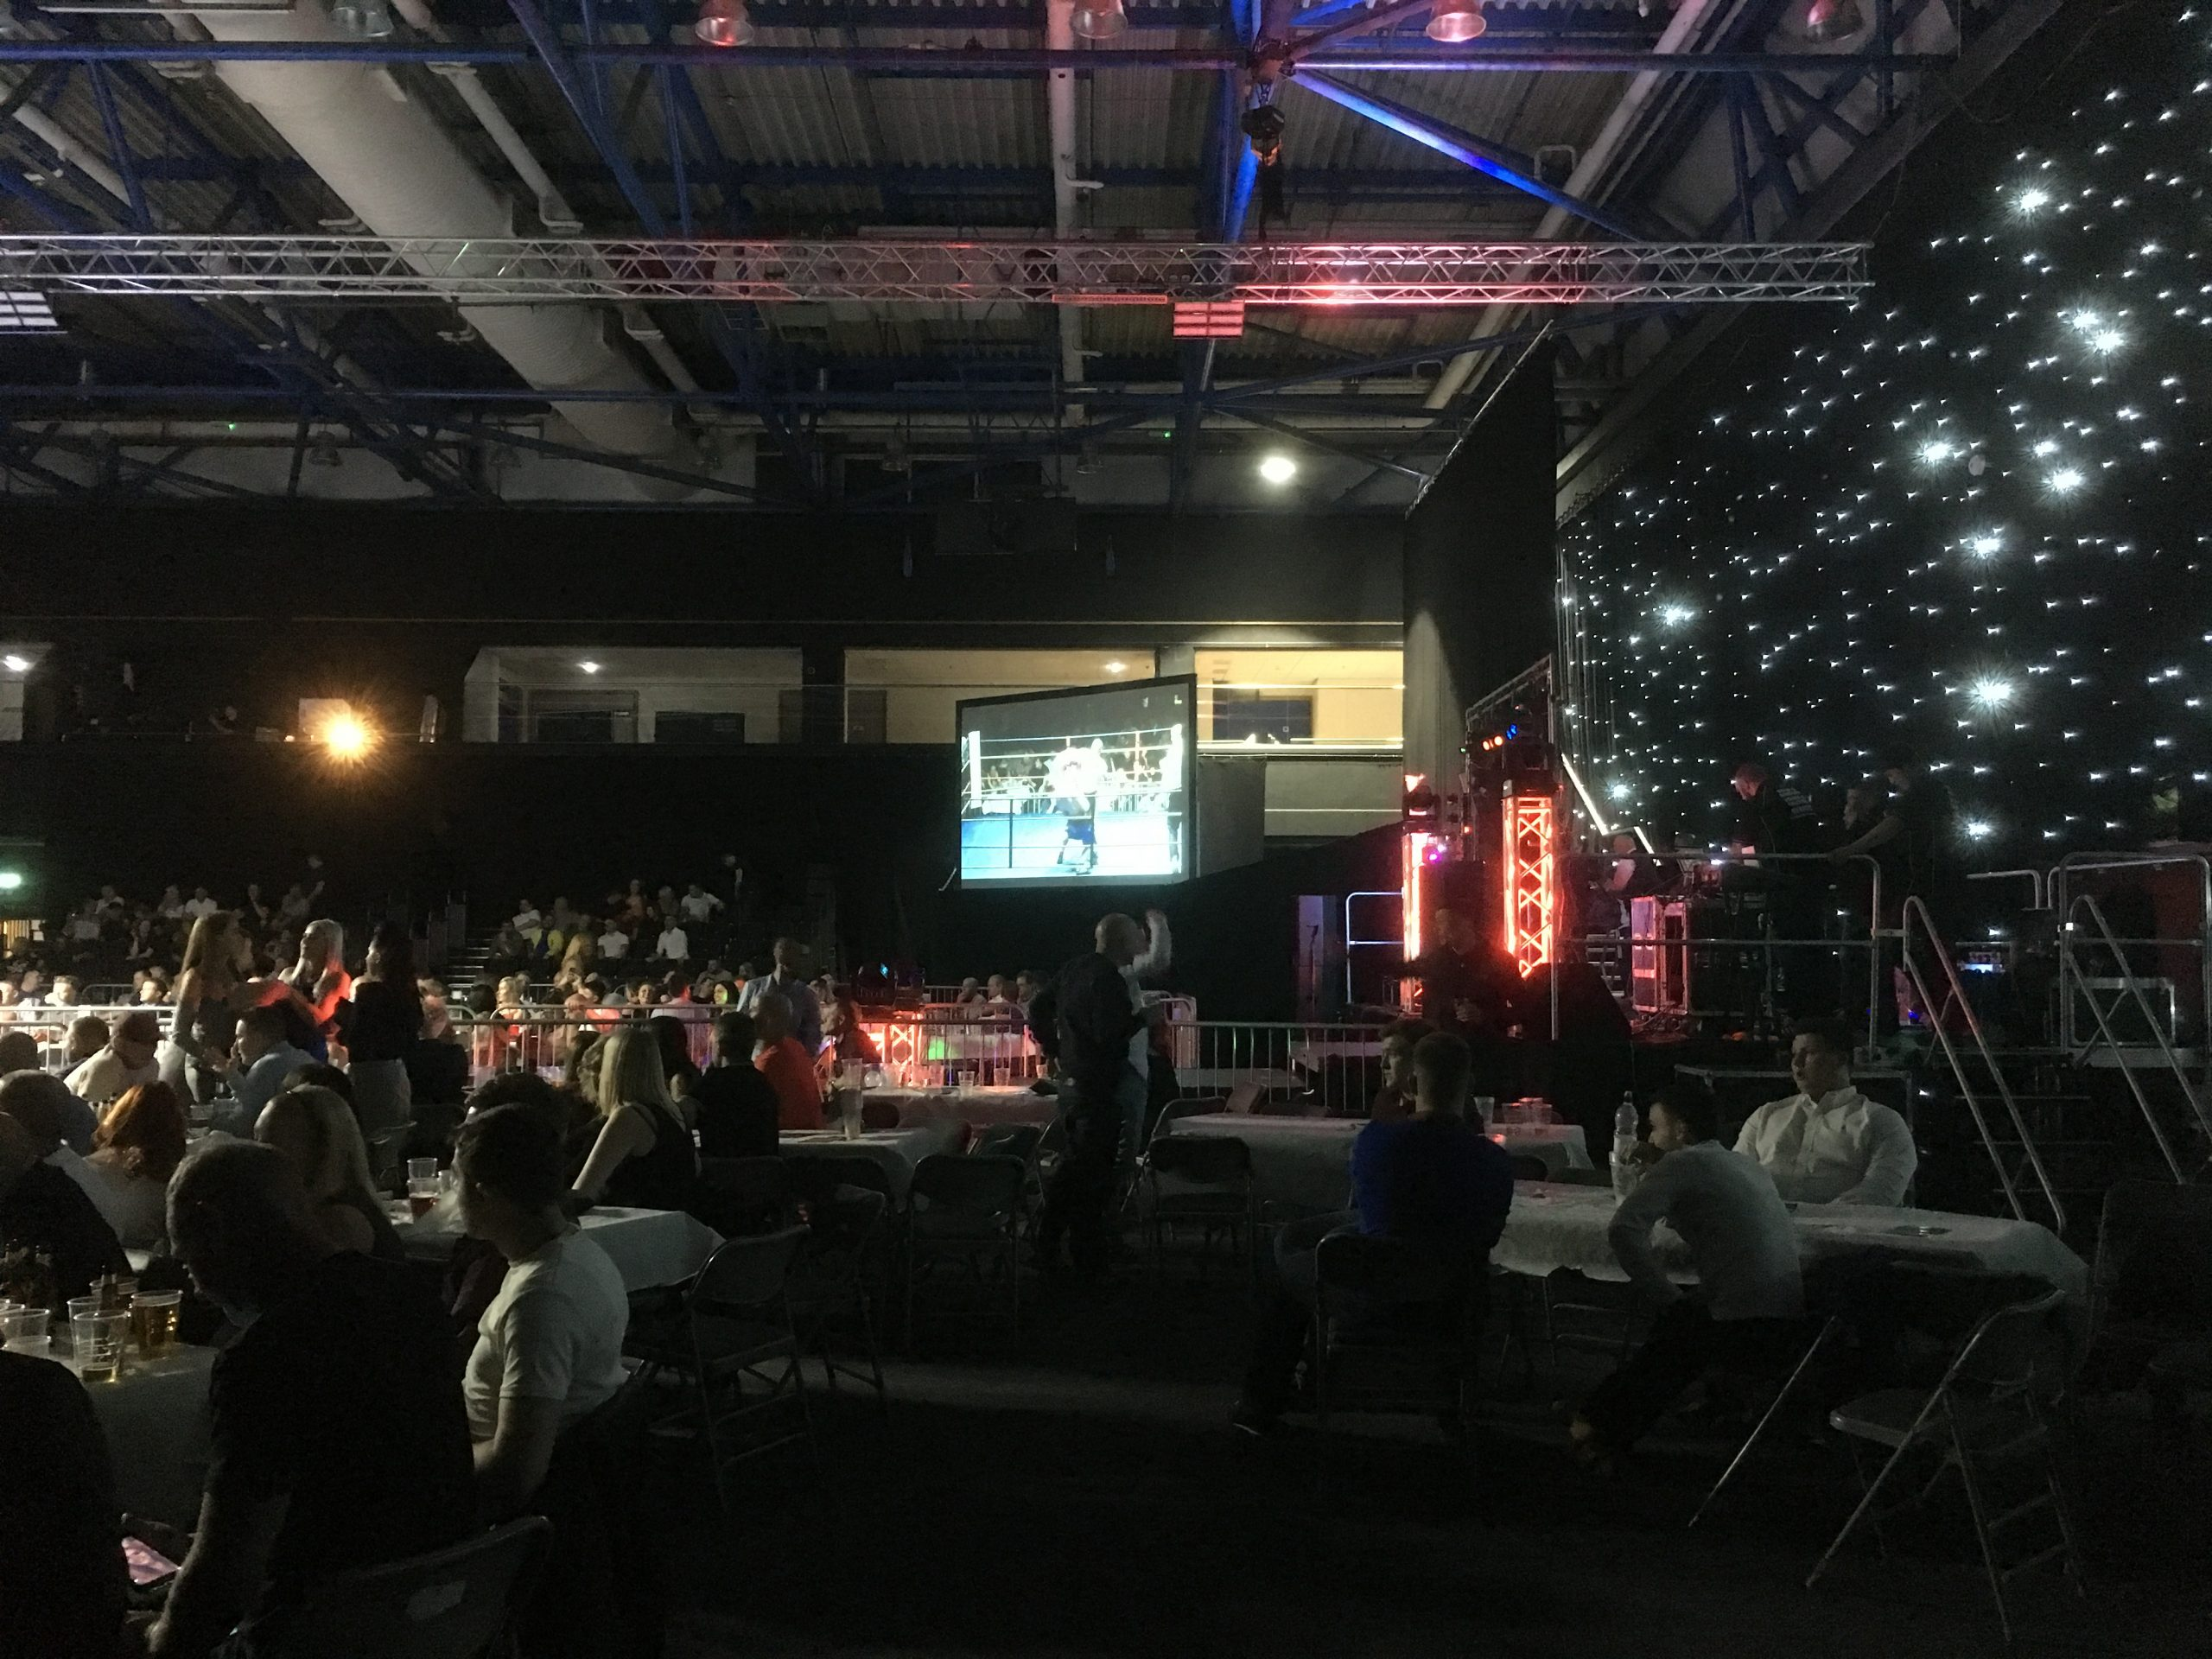 Boxing event on large fast fold screen at the Metrodome